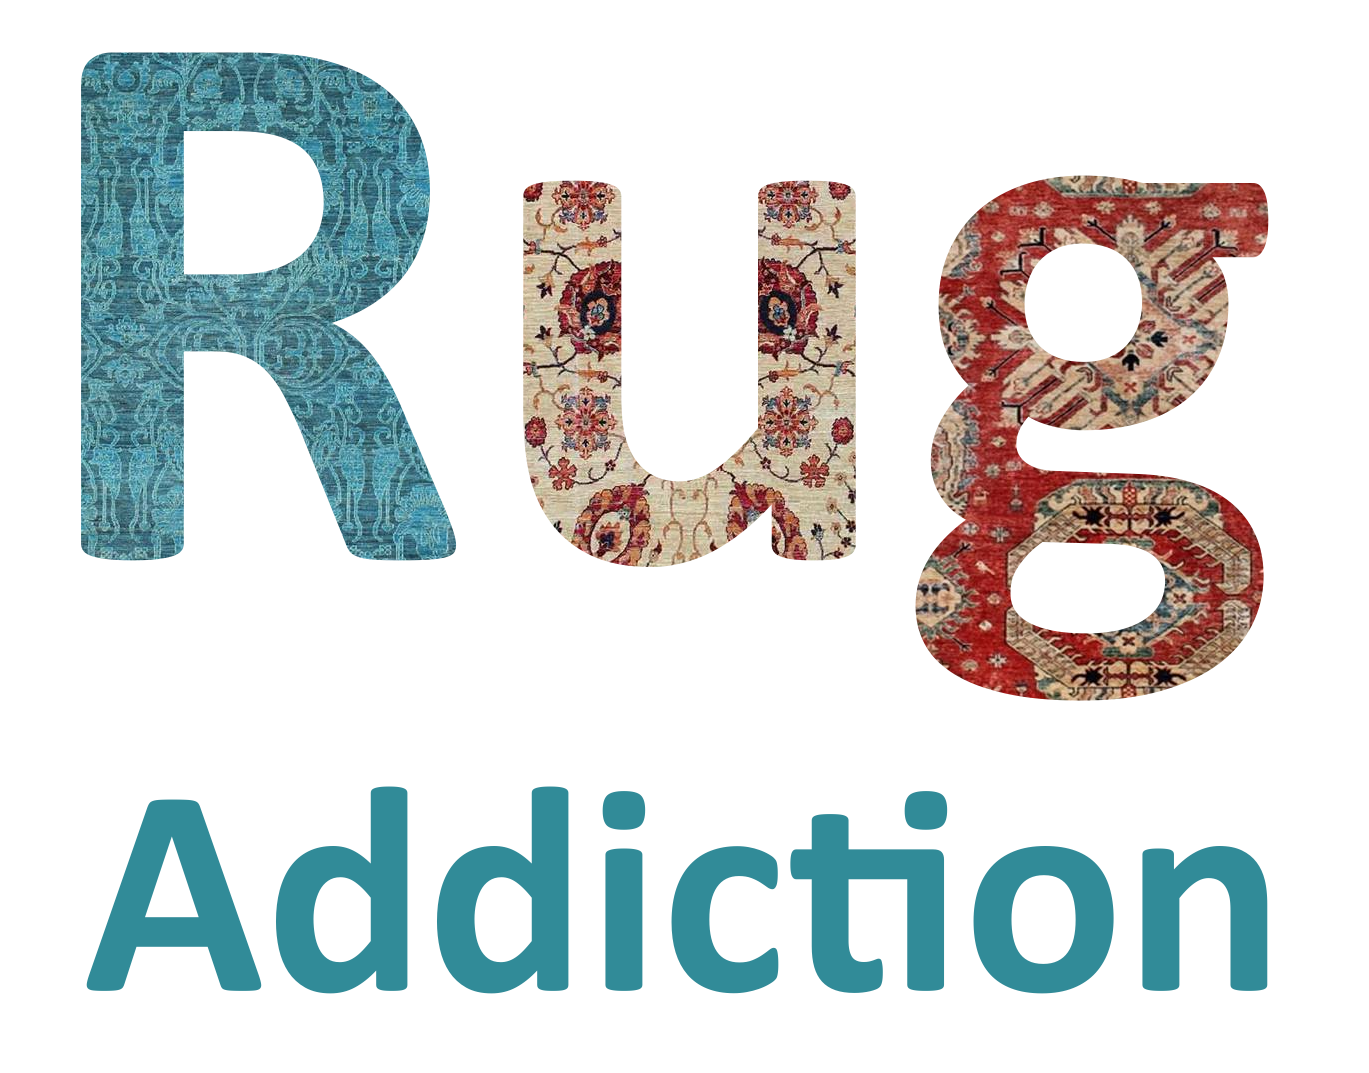 Rug Addiction